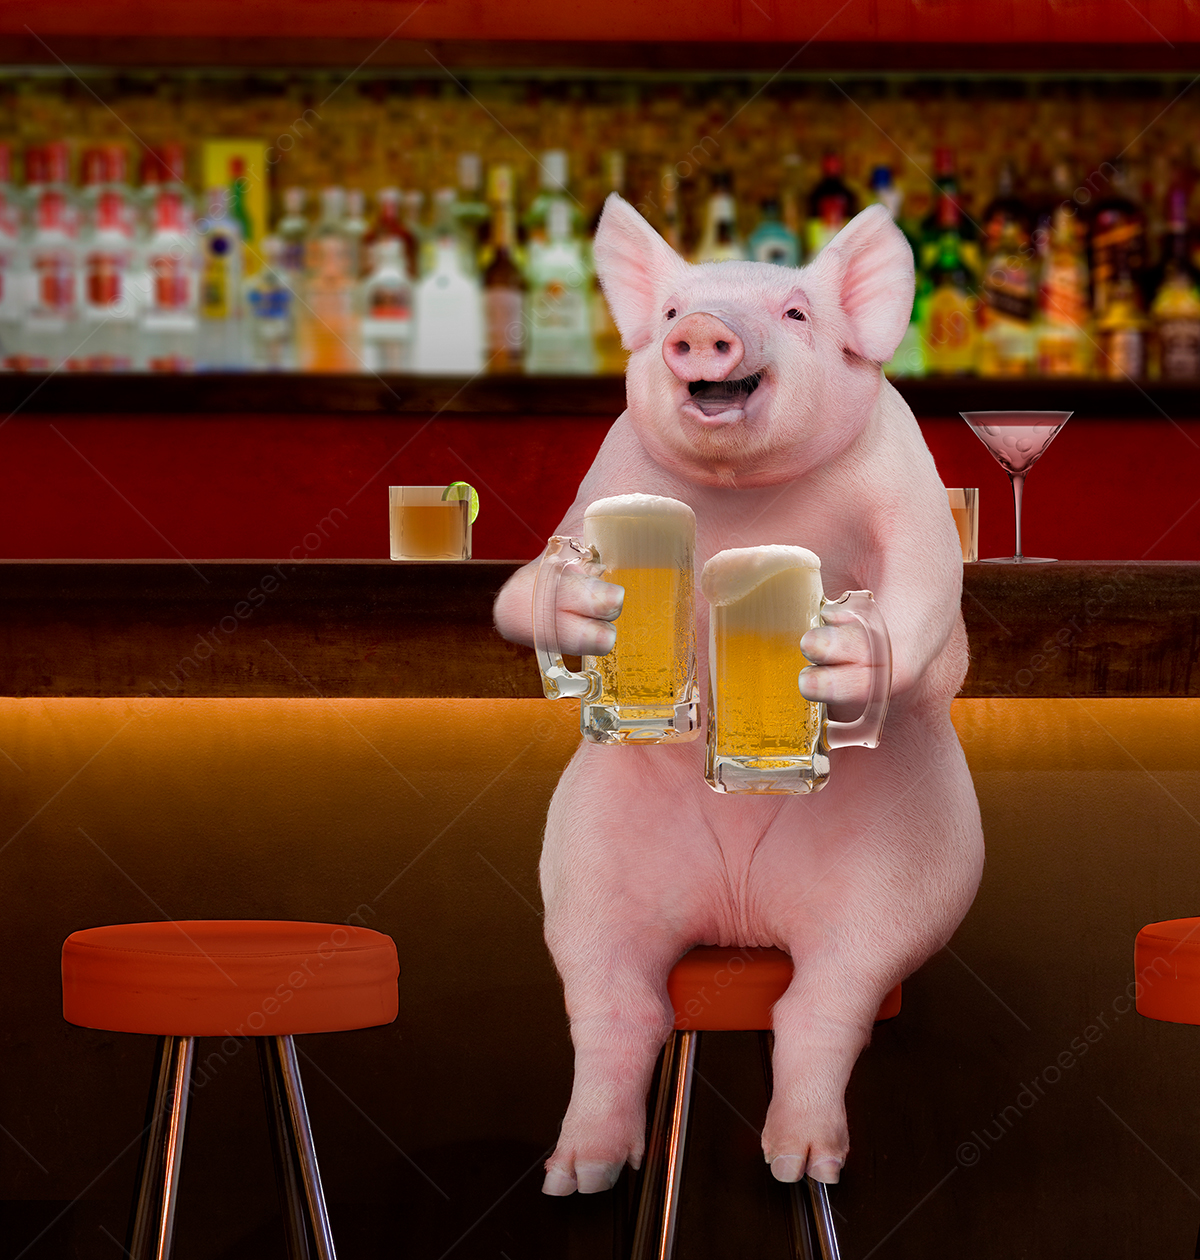 PIg_Drinking_Beer_in_A_Bar